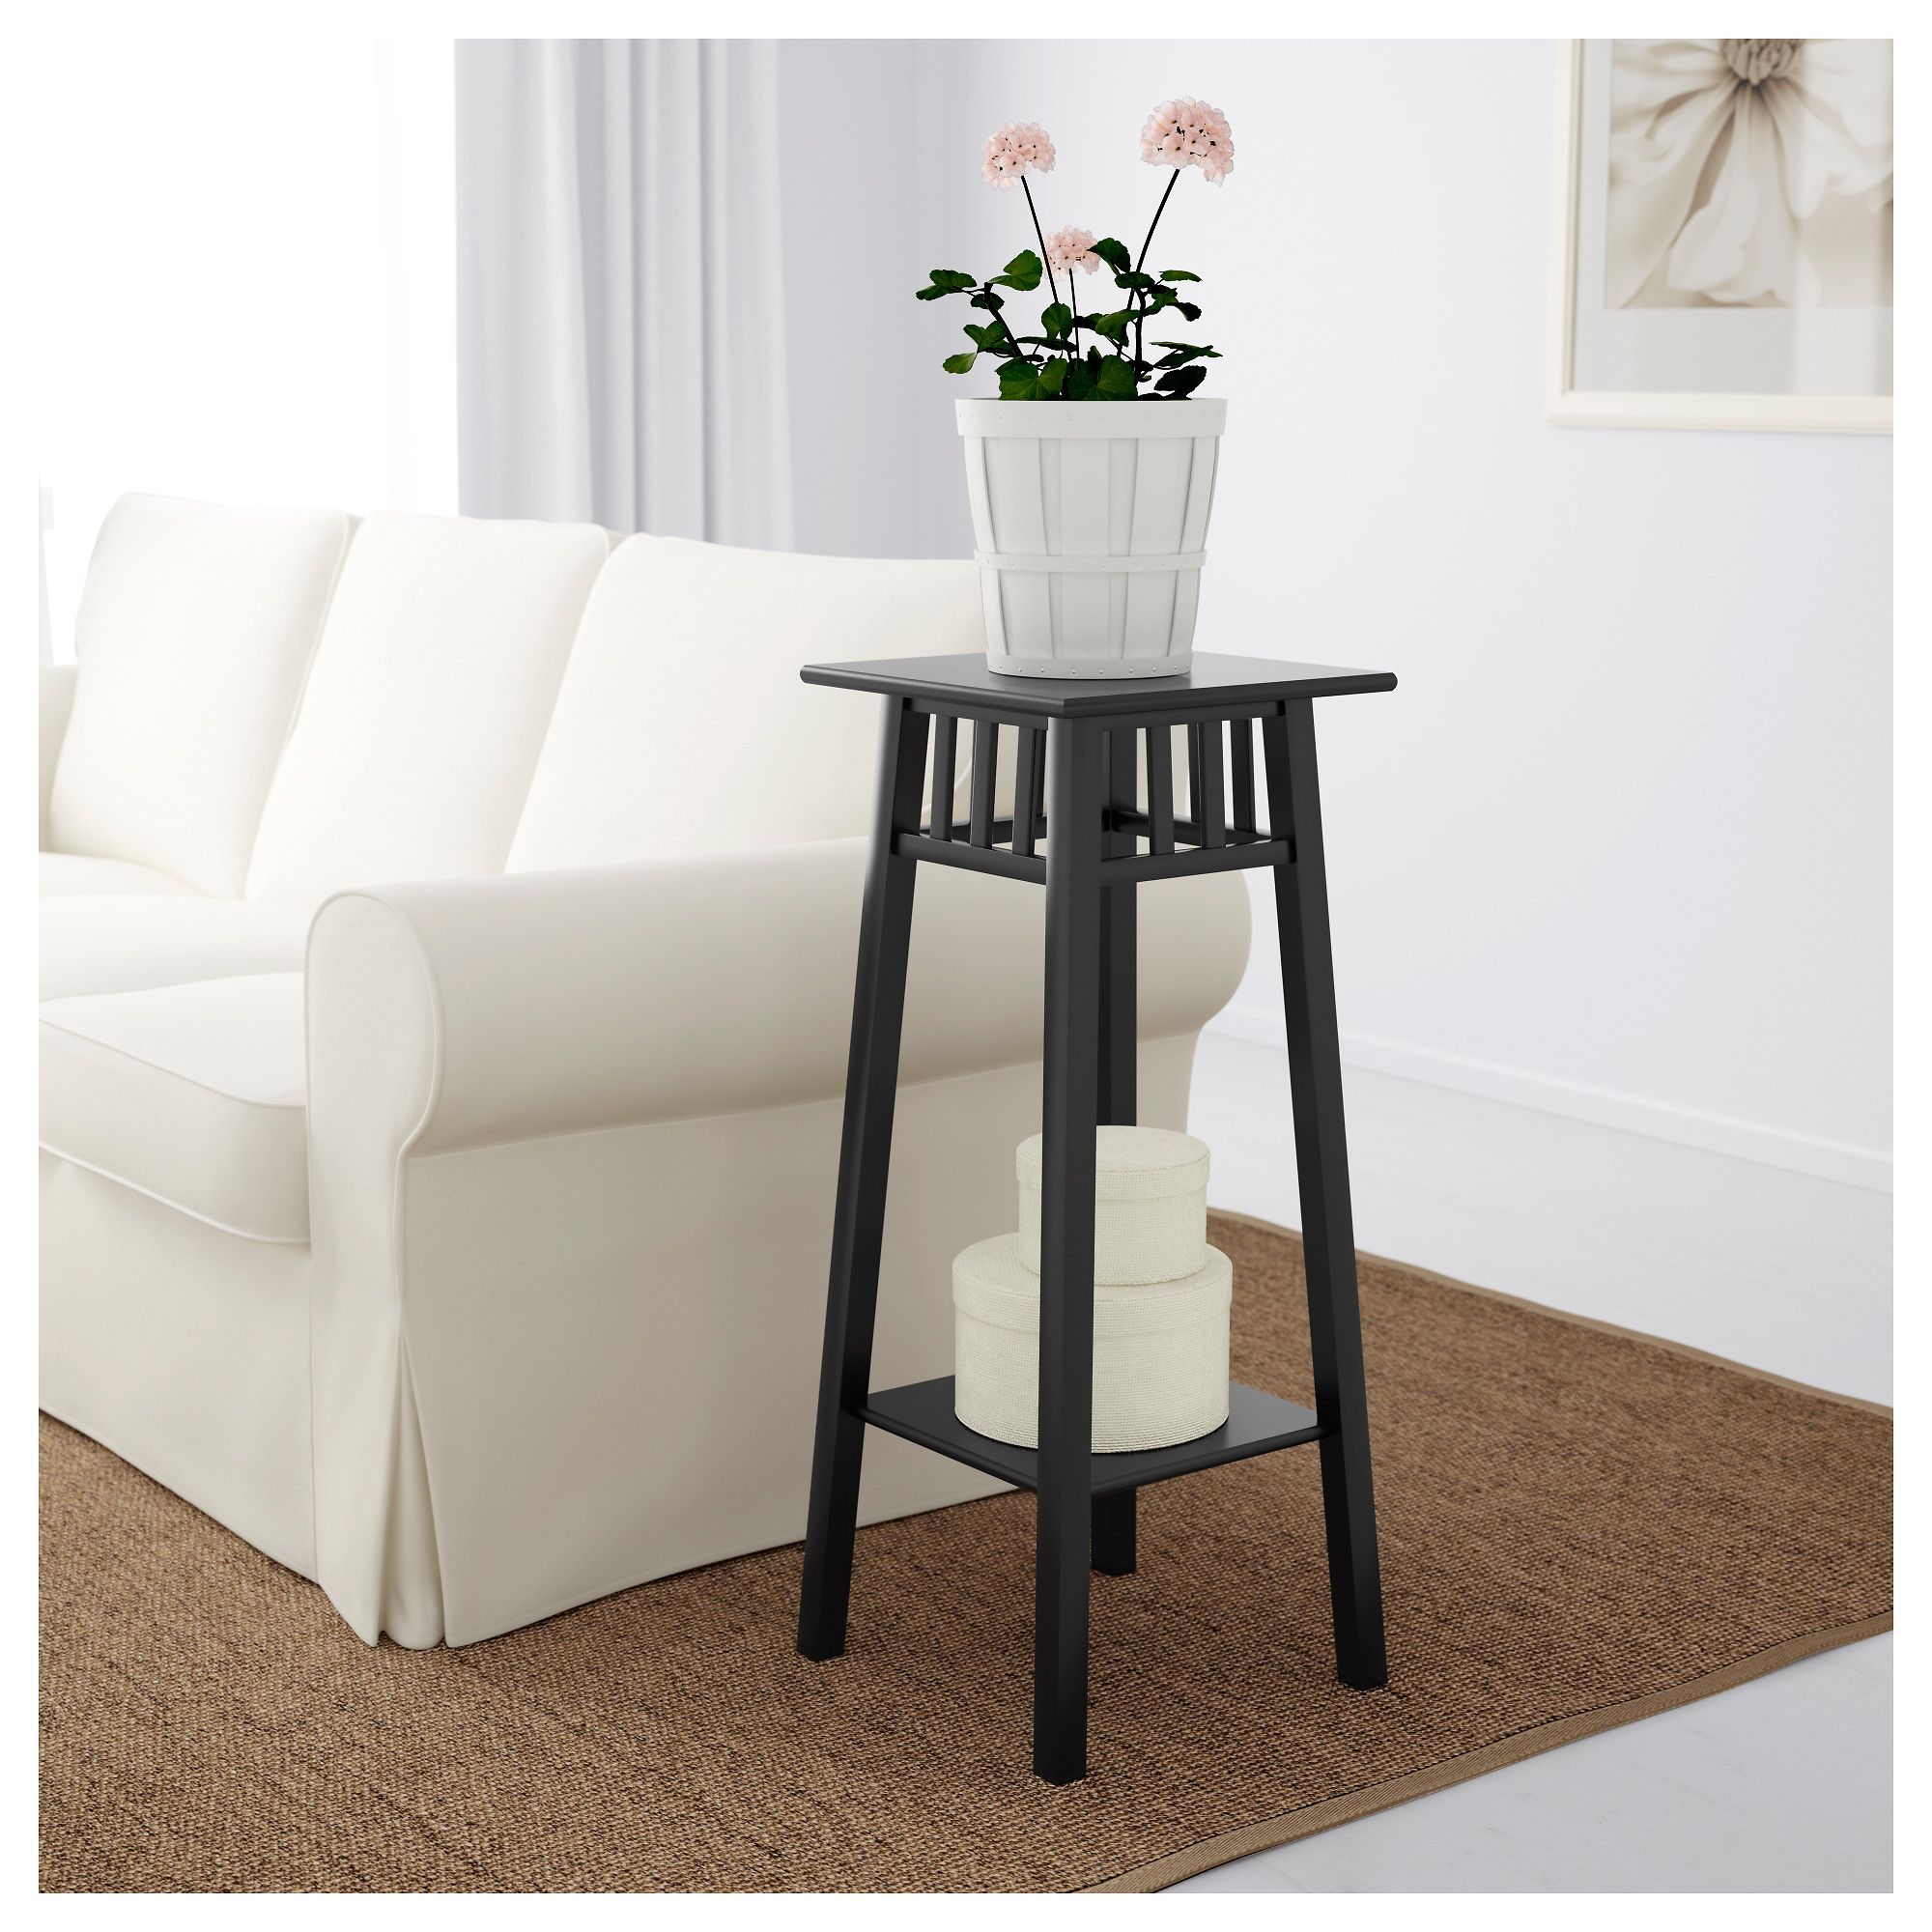 IKEA  LANTLIV Plant stand dark brown is part of Home Accents Ikea Hacks - IKEA Plant stand dark brown Length 32 cm, Width 32 cm, Height 78 cm, Max  load 25 kg, 50186114